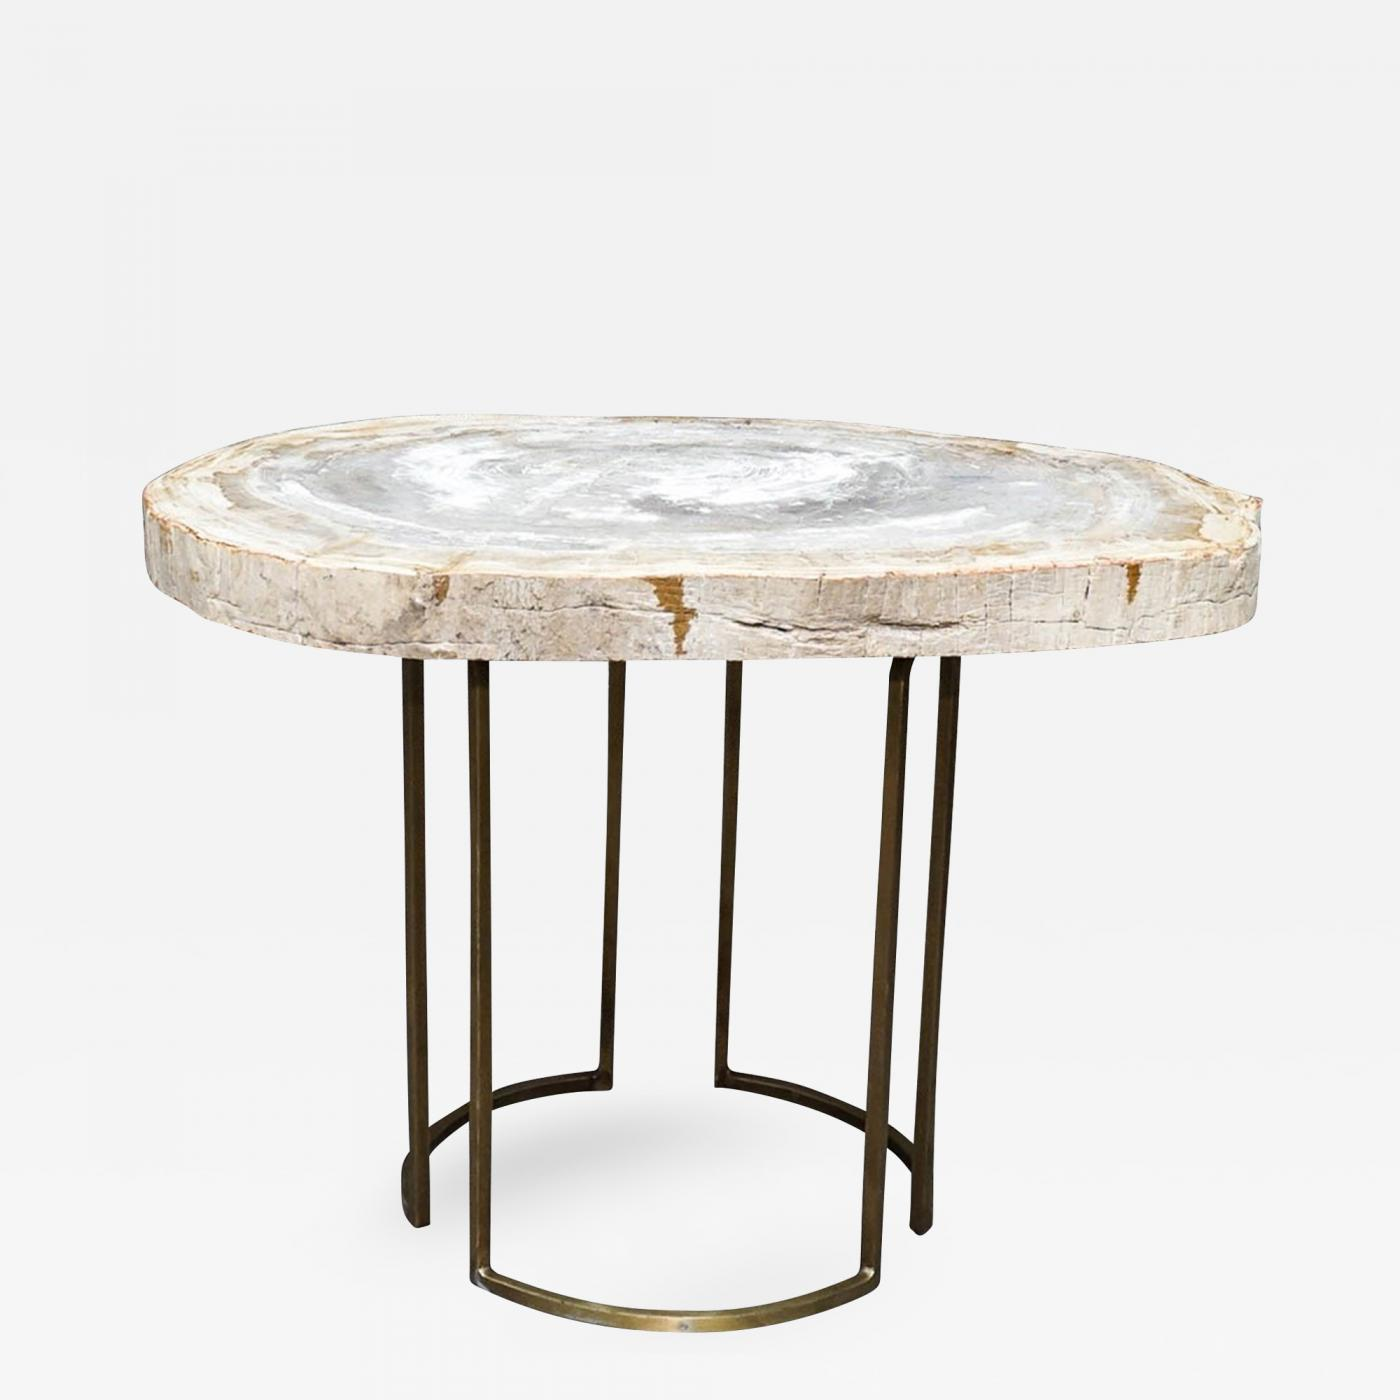 custom petrified wood slab accent table with brass base listings furniture tables side glass console inch runner round folding target narrow mirrored ethan allen nesting end